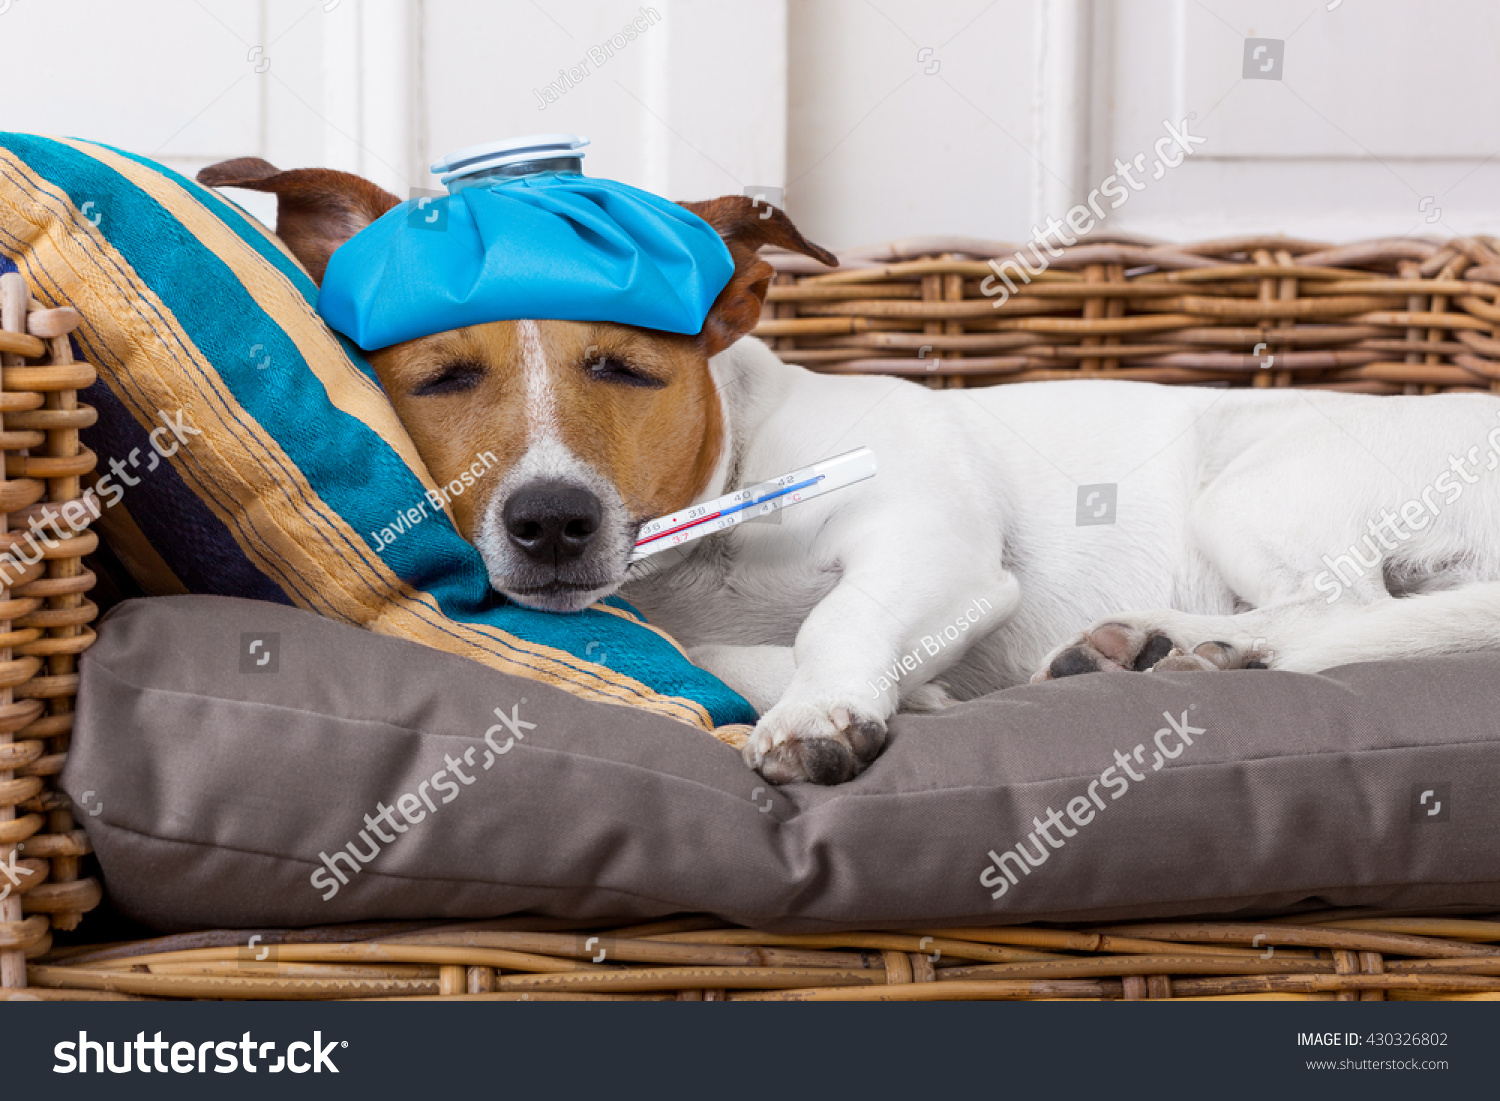 Sick Ill Jack Russell Dog Bed Stock Photo (Edit Now) 430326802